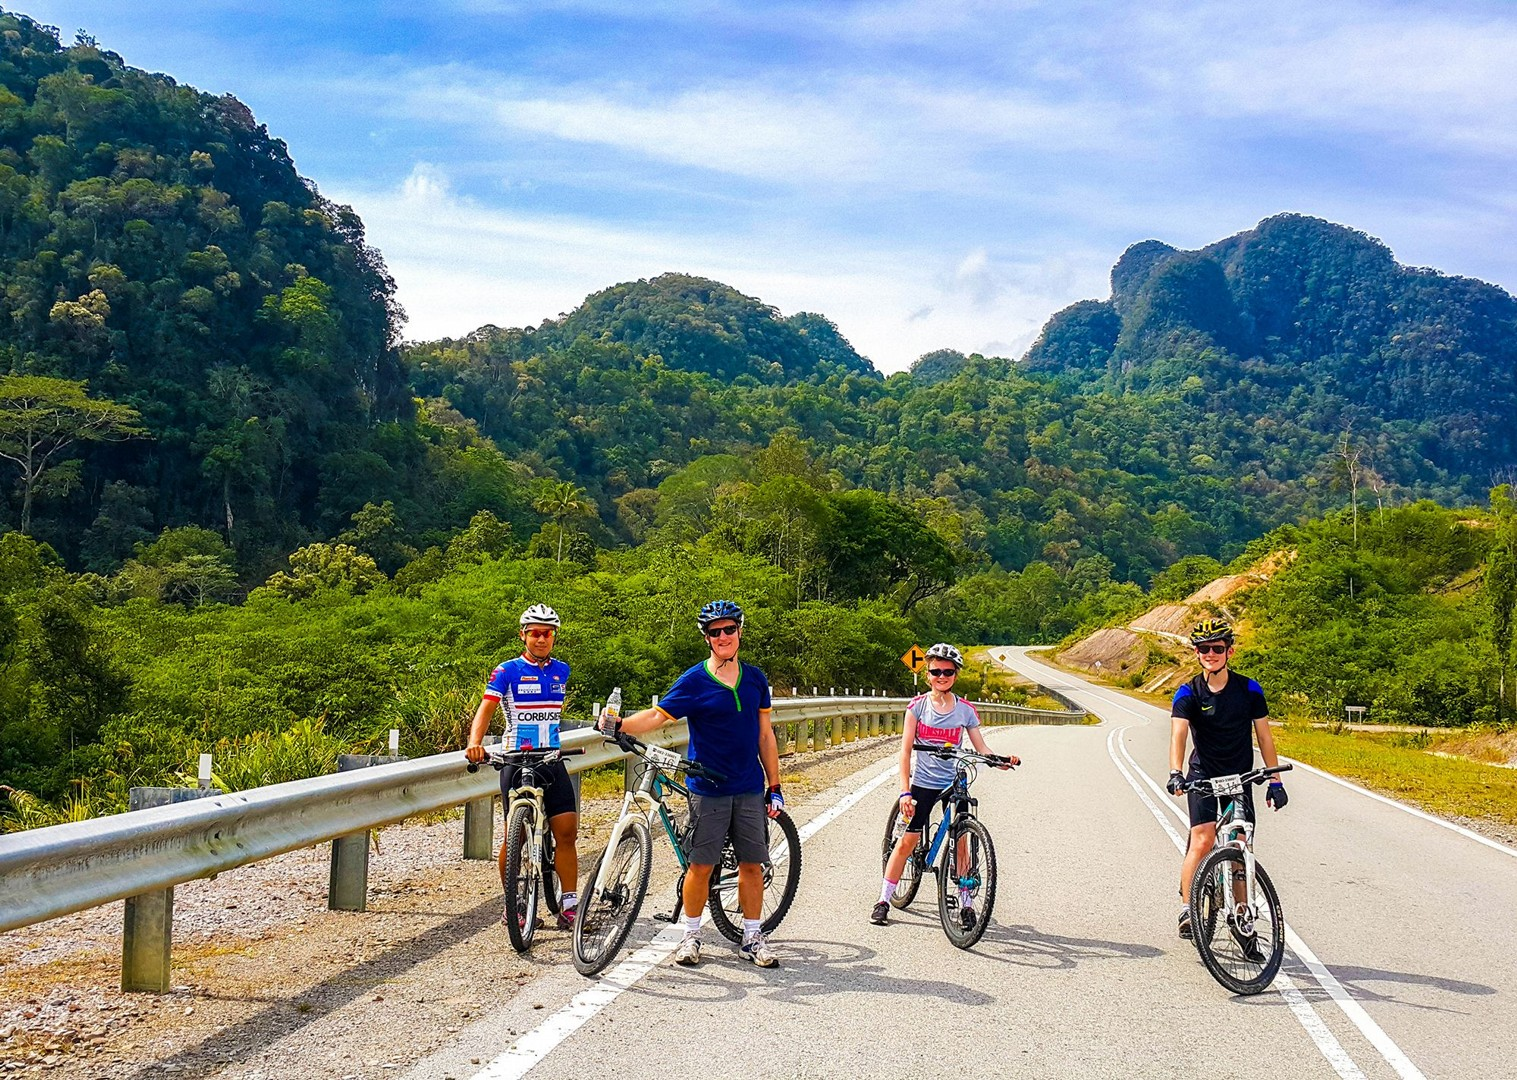 group-cycling-family-guided-holiday-in-borneo-saddle-skedaddle.jpg - Borneo - Sarawak Jungle Adventures - Family Cycling